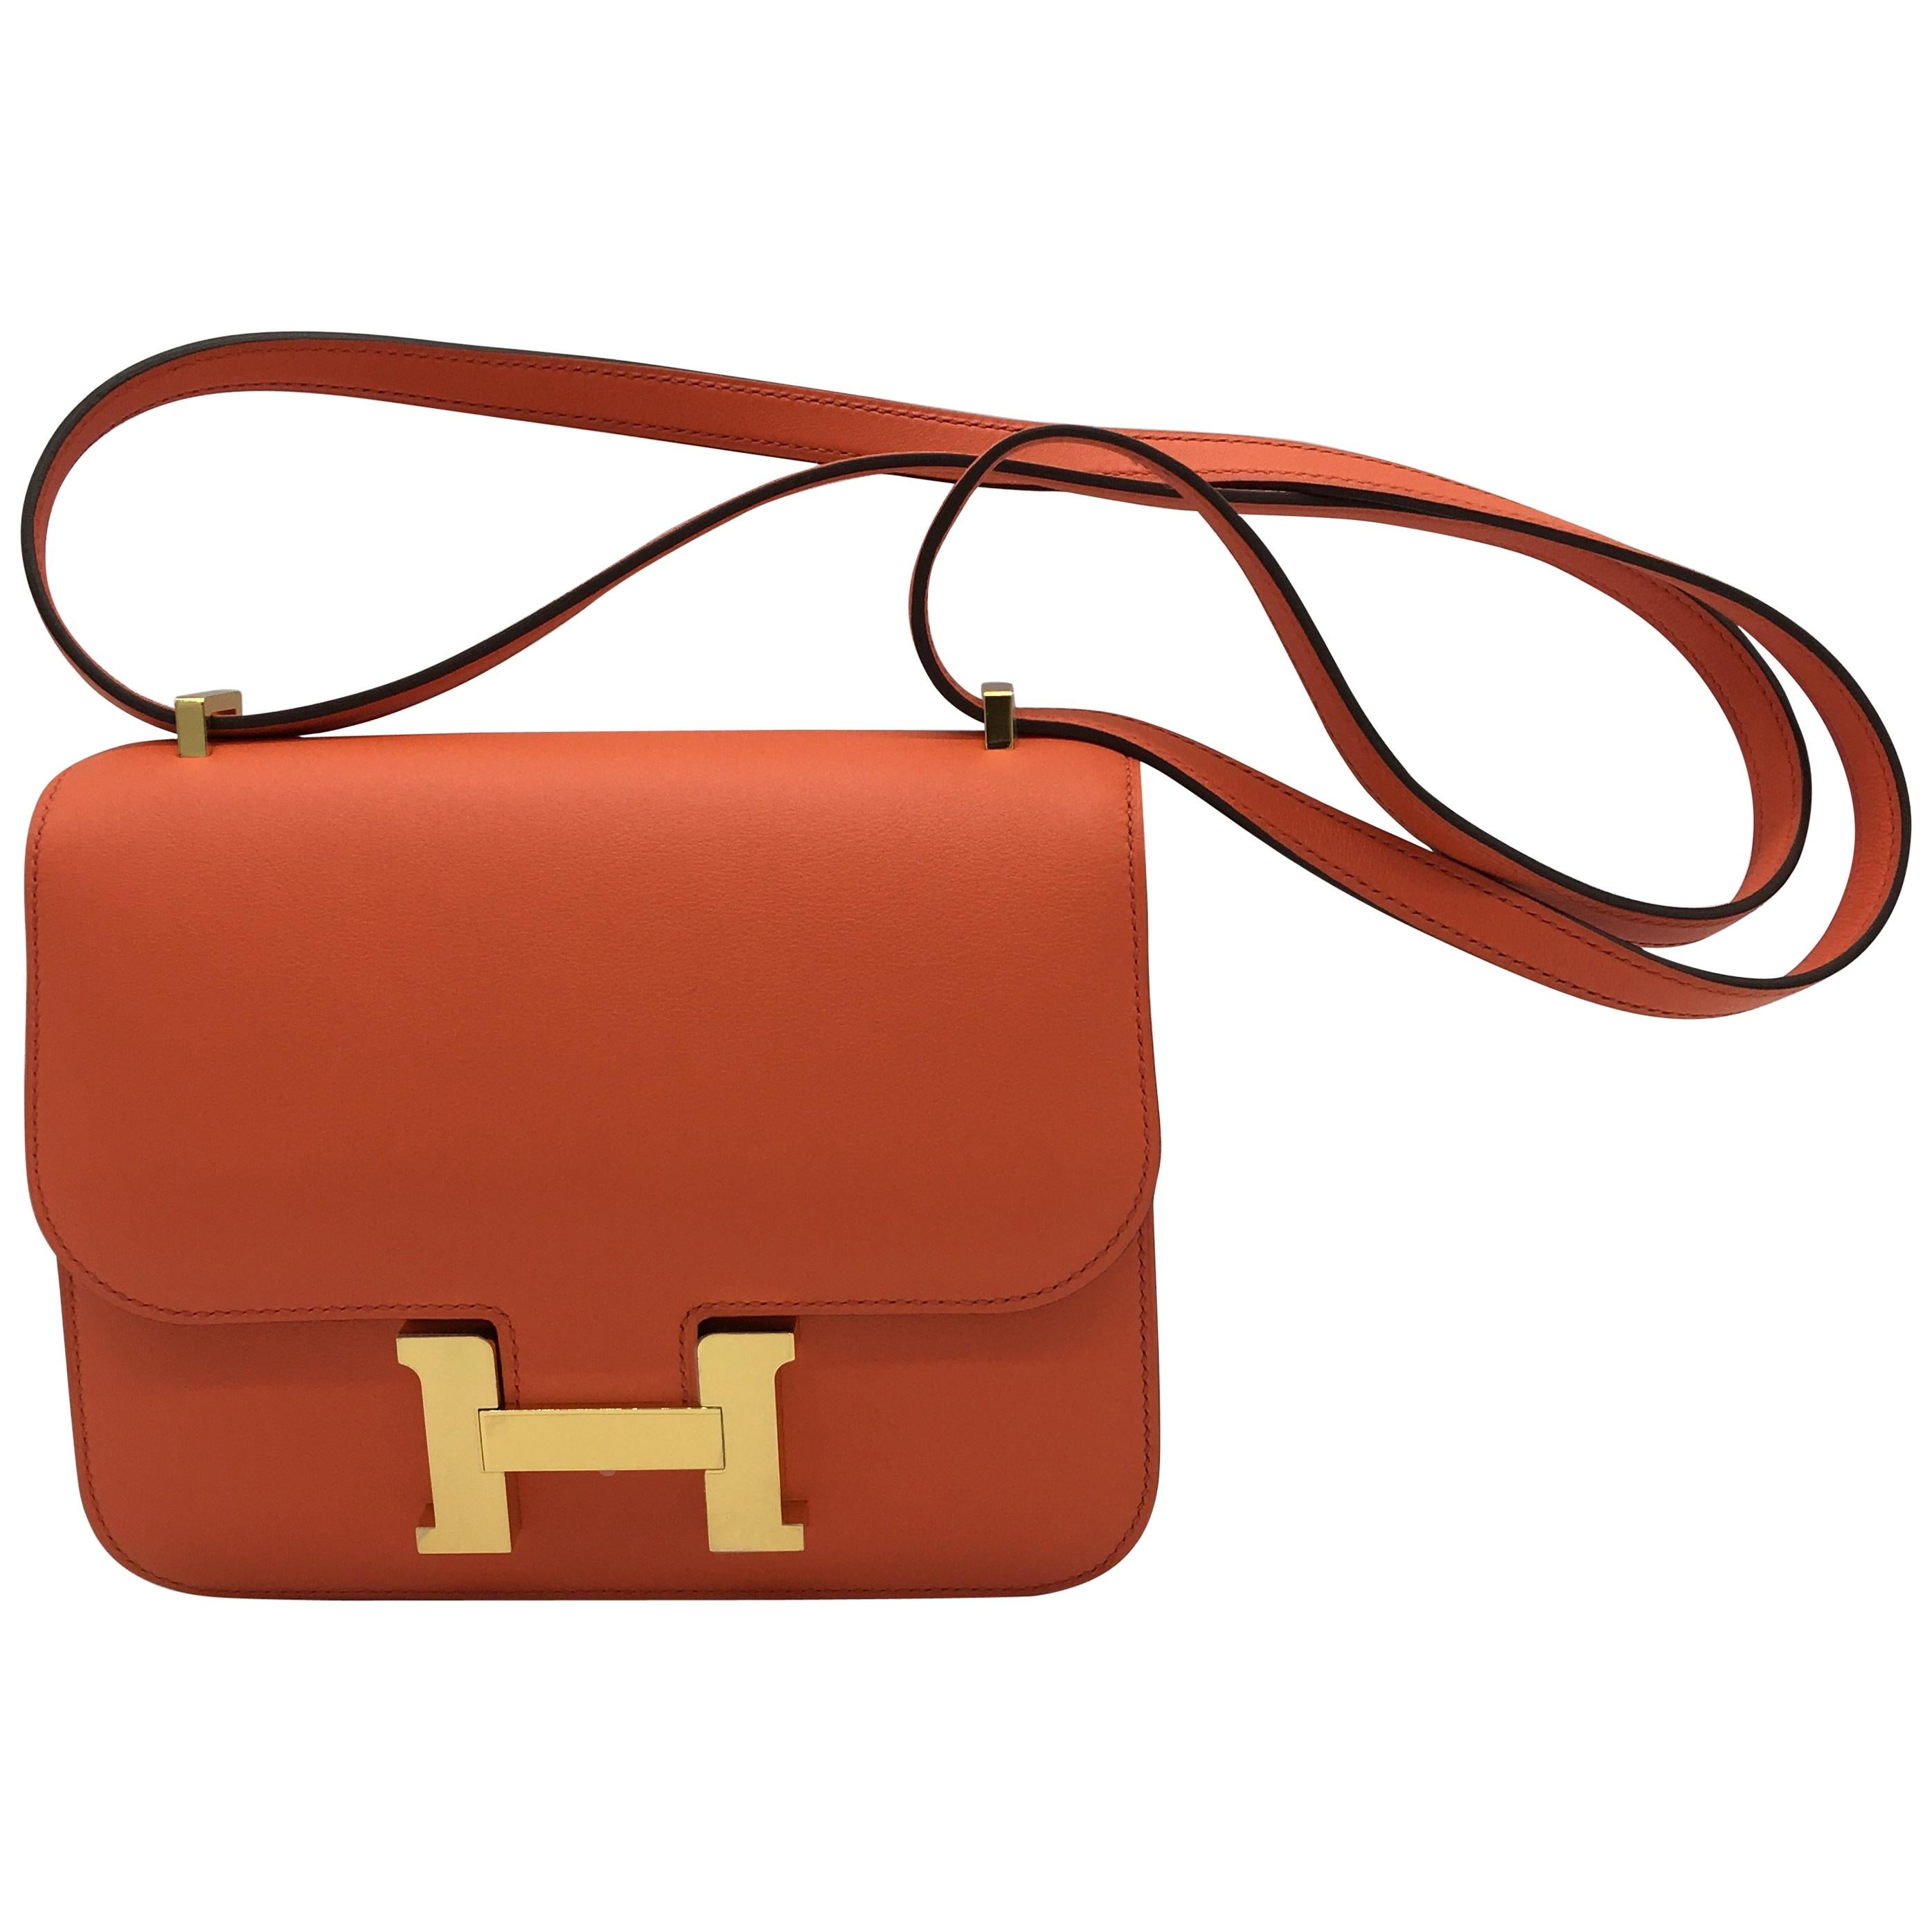 Hermes Constance Bags - 107 For Sale on 1stdibs 2f985178d1ff8